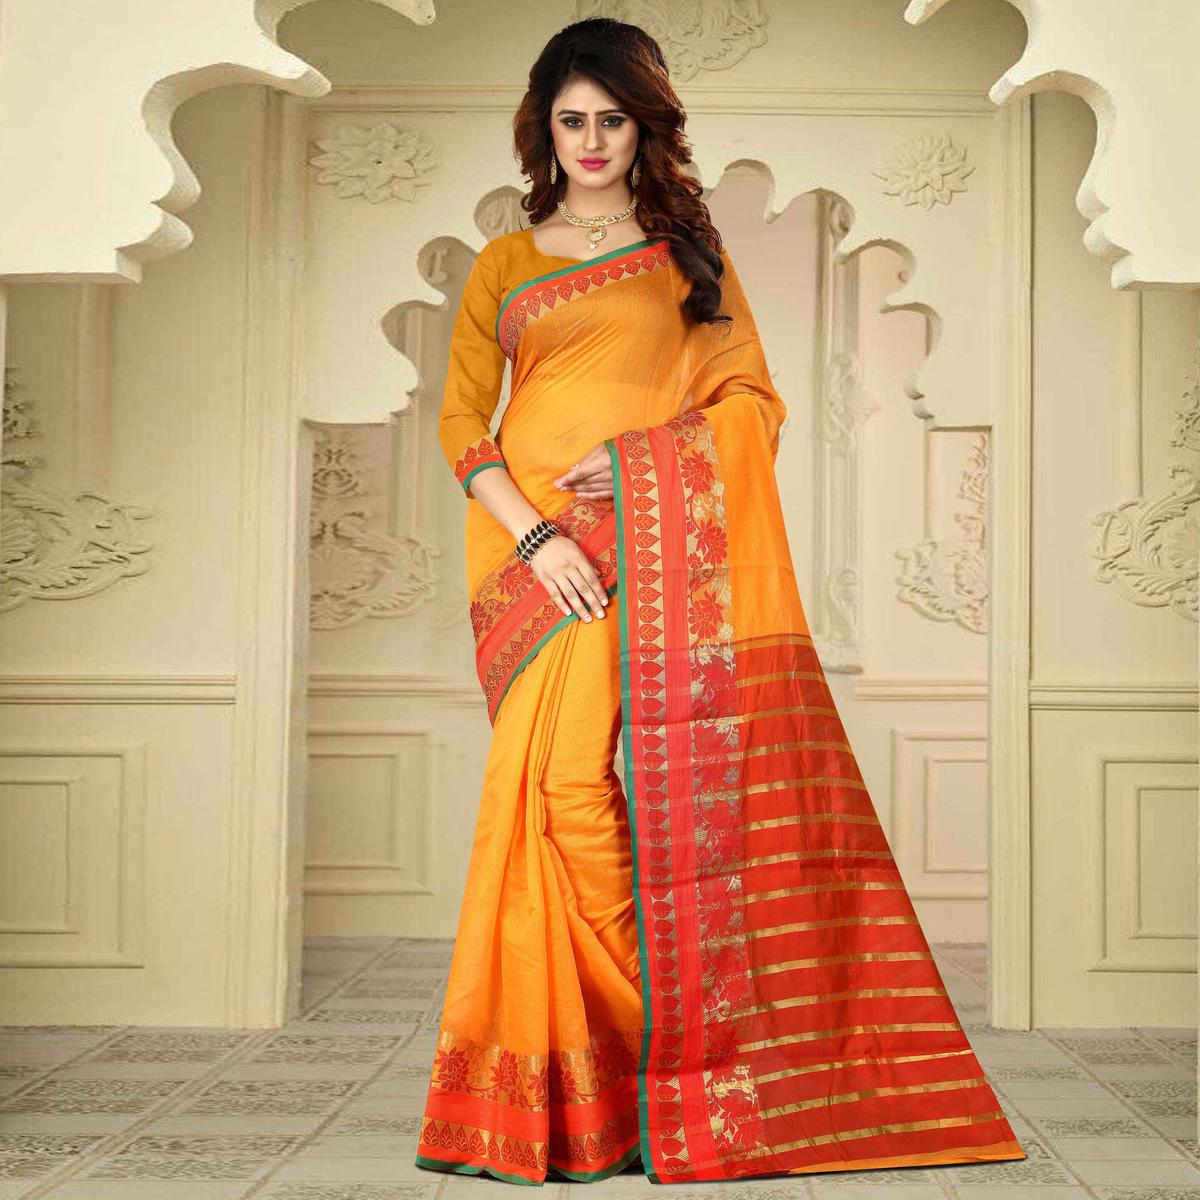 Classy Orange Colored Festive Wear Traditional Heavy Banarasi Silk Saree